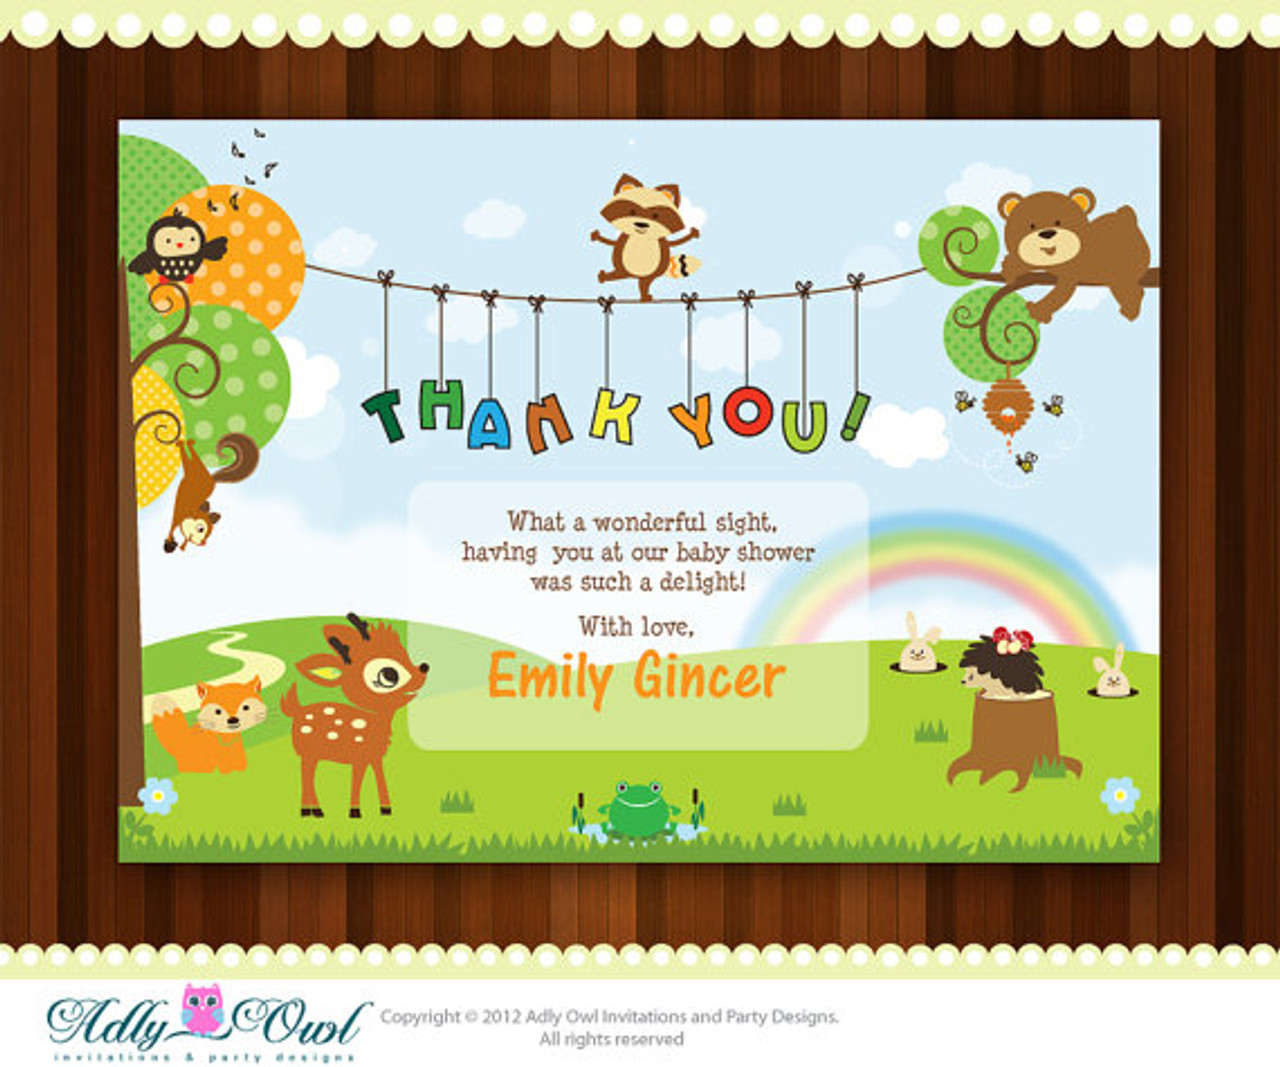 photograph about Printable Baby Shower Card called Tailored Forest/Woodland Thank on your own Little one Shower Printable Do-it-yourself card with forest pets, fawn,hadgehog,undertake,fox,frog - Just electronic document